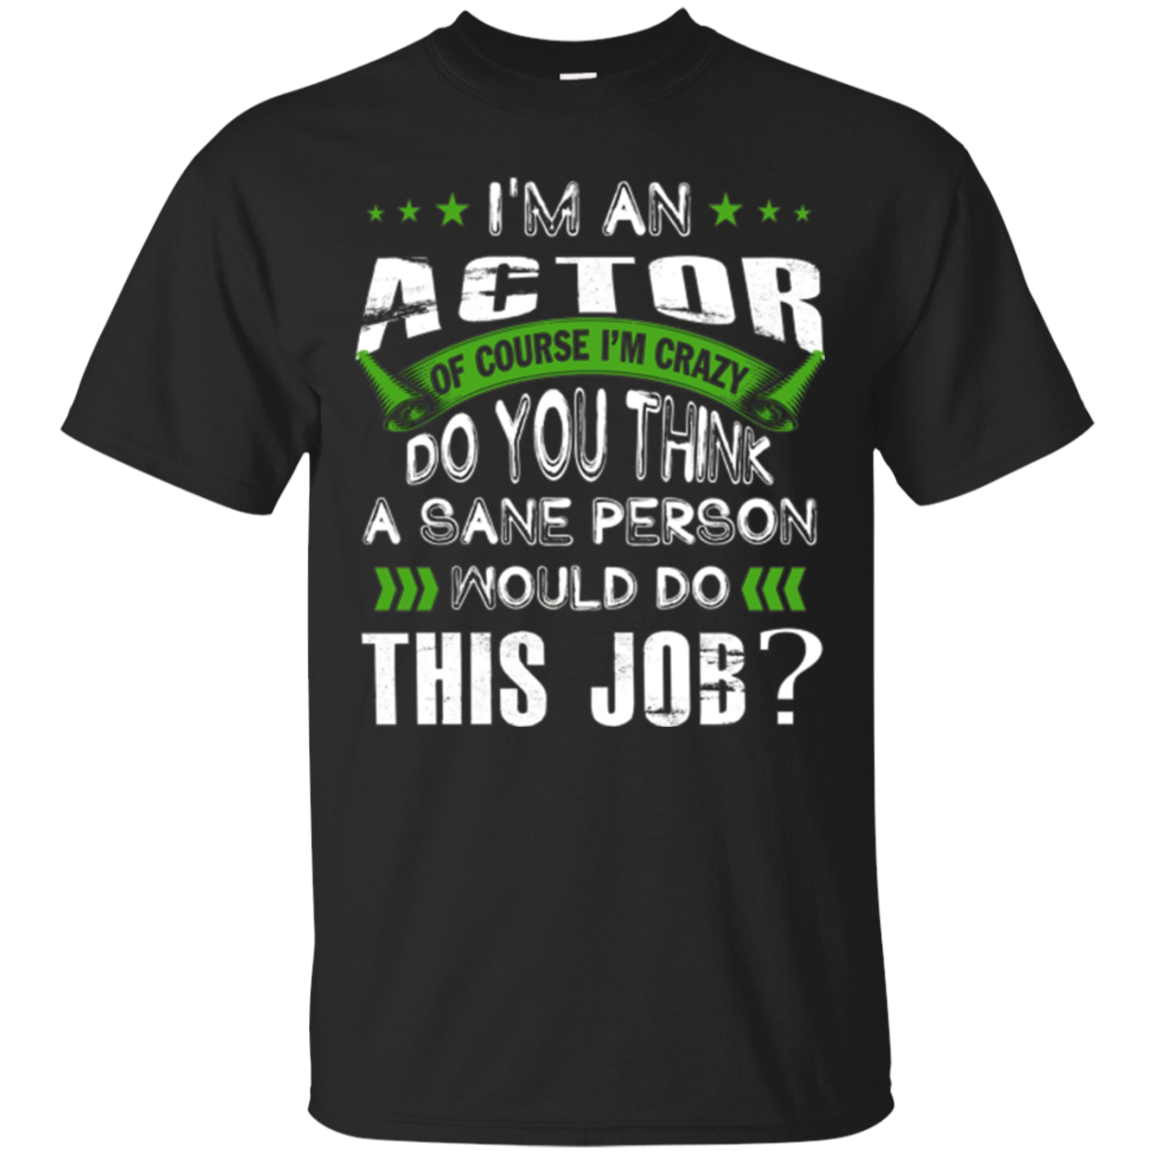 ACTOR is crazy do you think a sane person would this job